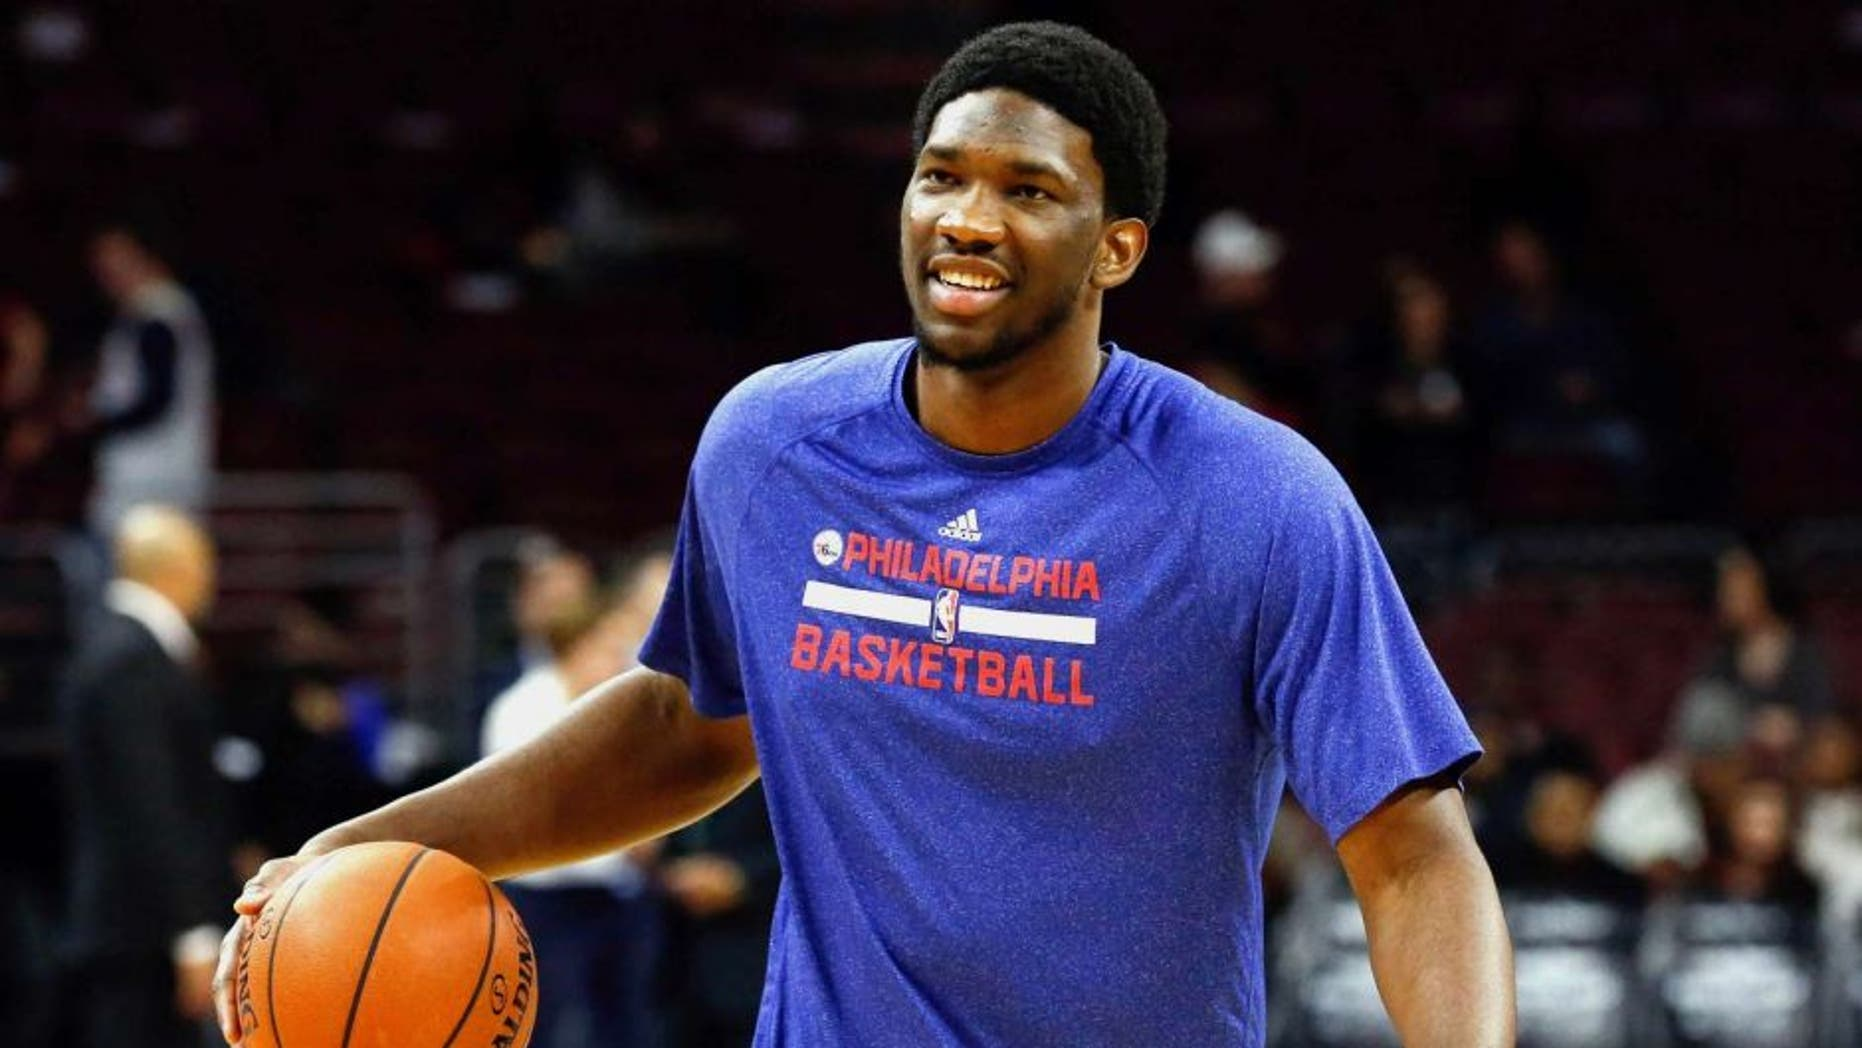 Jan 5, 2015; Philadelphia, PA, USA; Philadelphia 76ers injured center Joel Embiid (21) during warm ups before a game against the Cleveland Cavaliers at Wells Fargo Center. Mandatory Credit: Bill Streicher-USA TODAY Sports